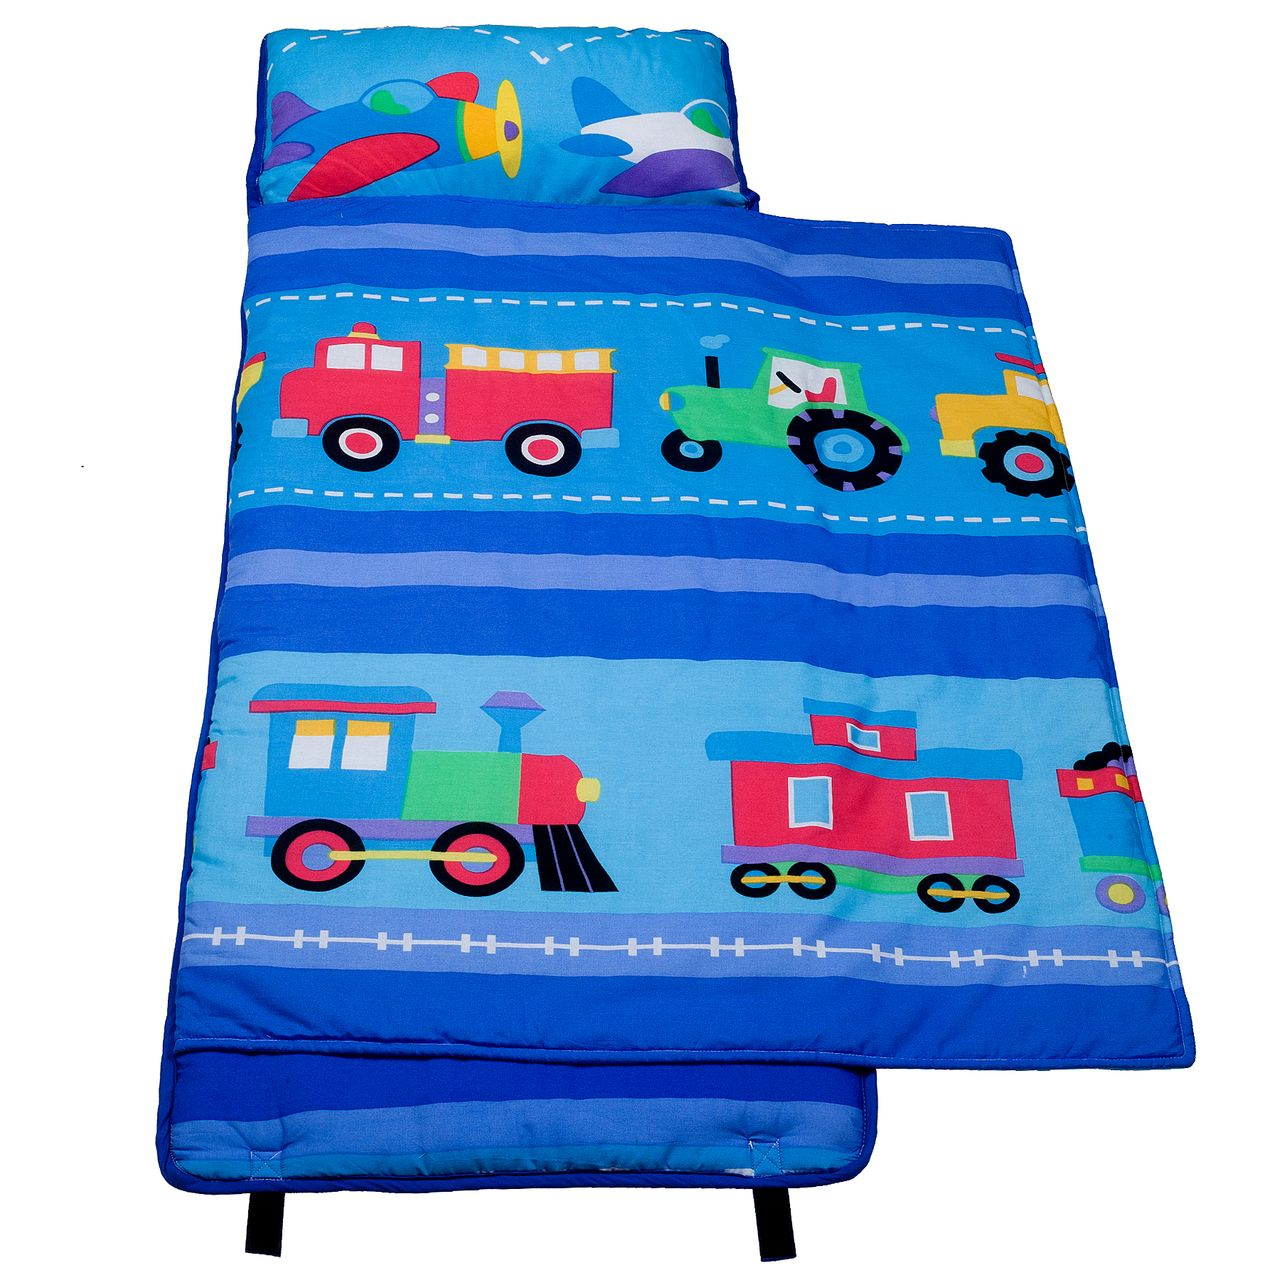 Pin On Nap Mats For Toddlers